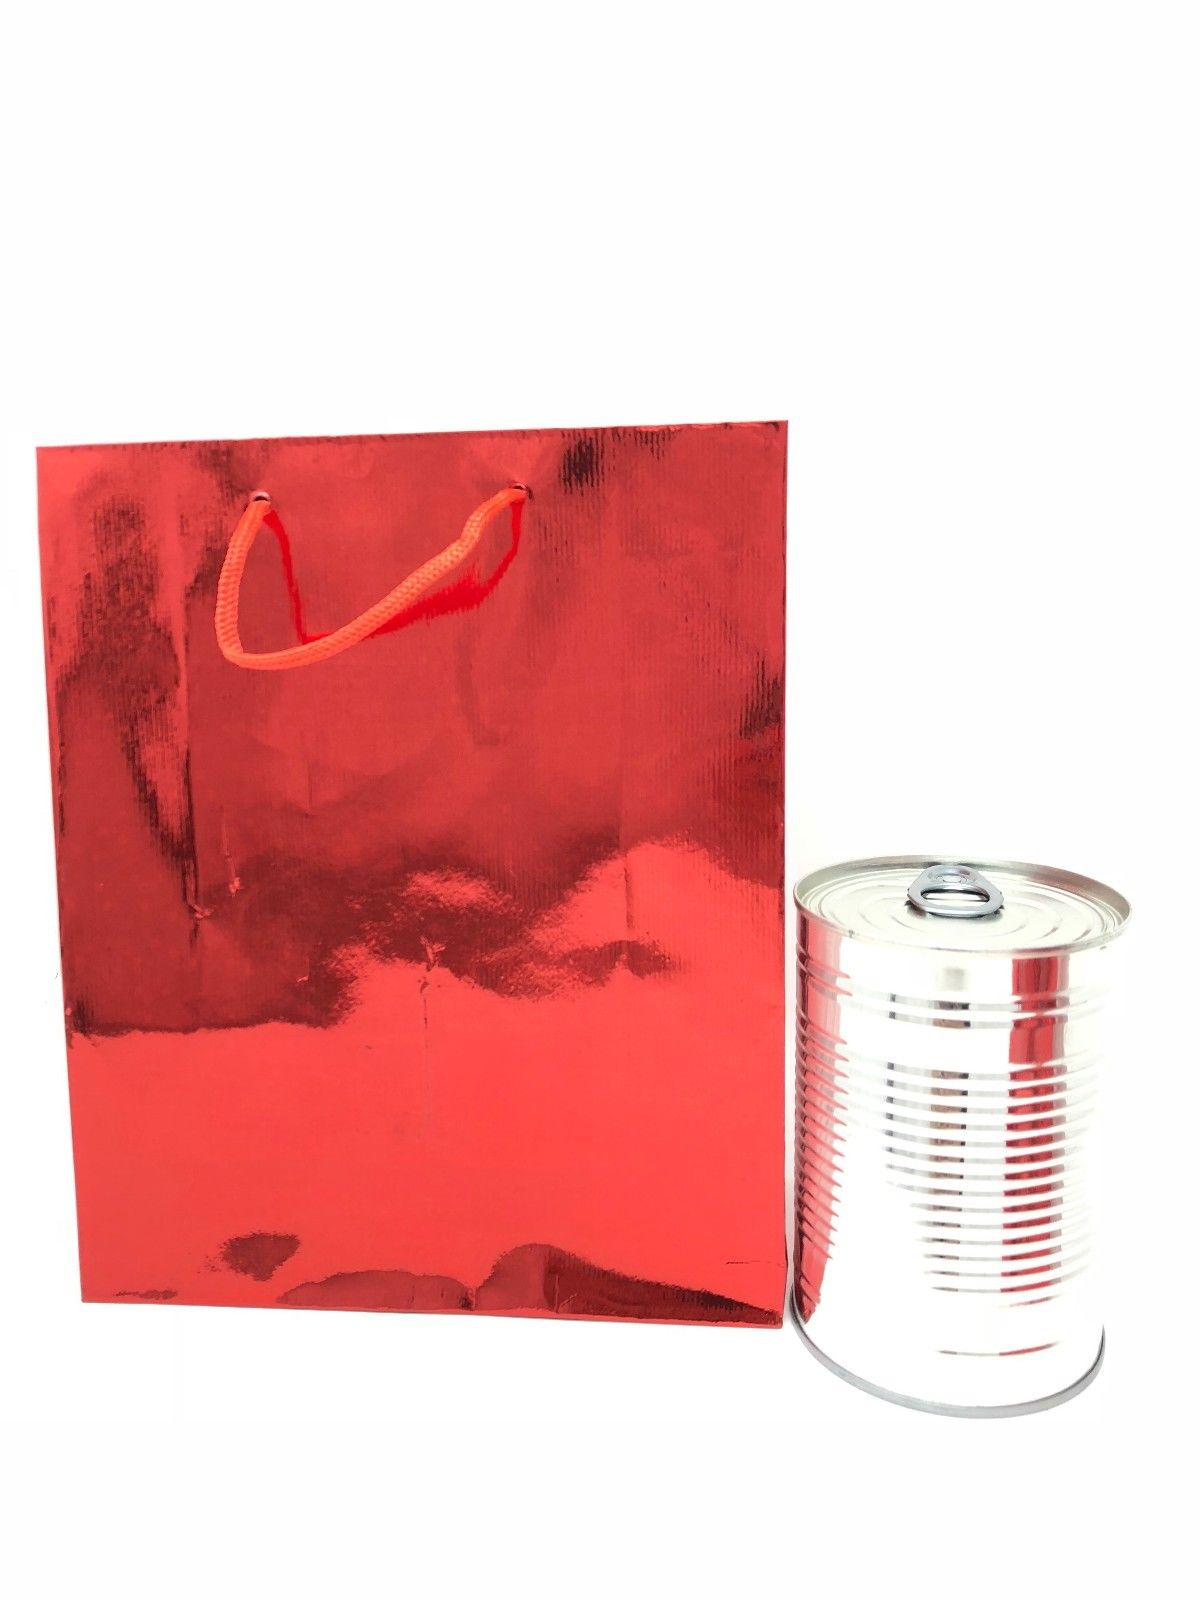 12 Pack Gift Bags Holographic Foil Party Weddings Presents Christmas Bulk Buy